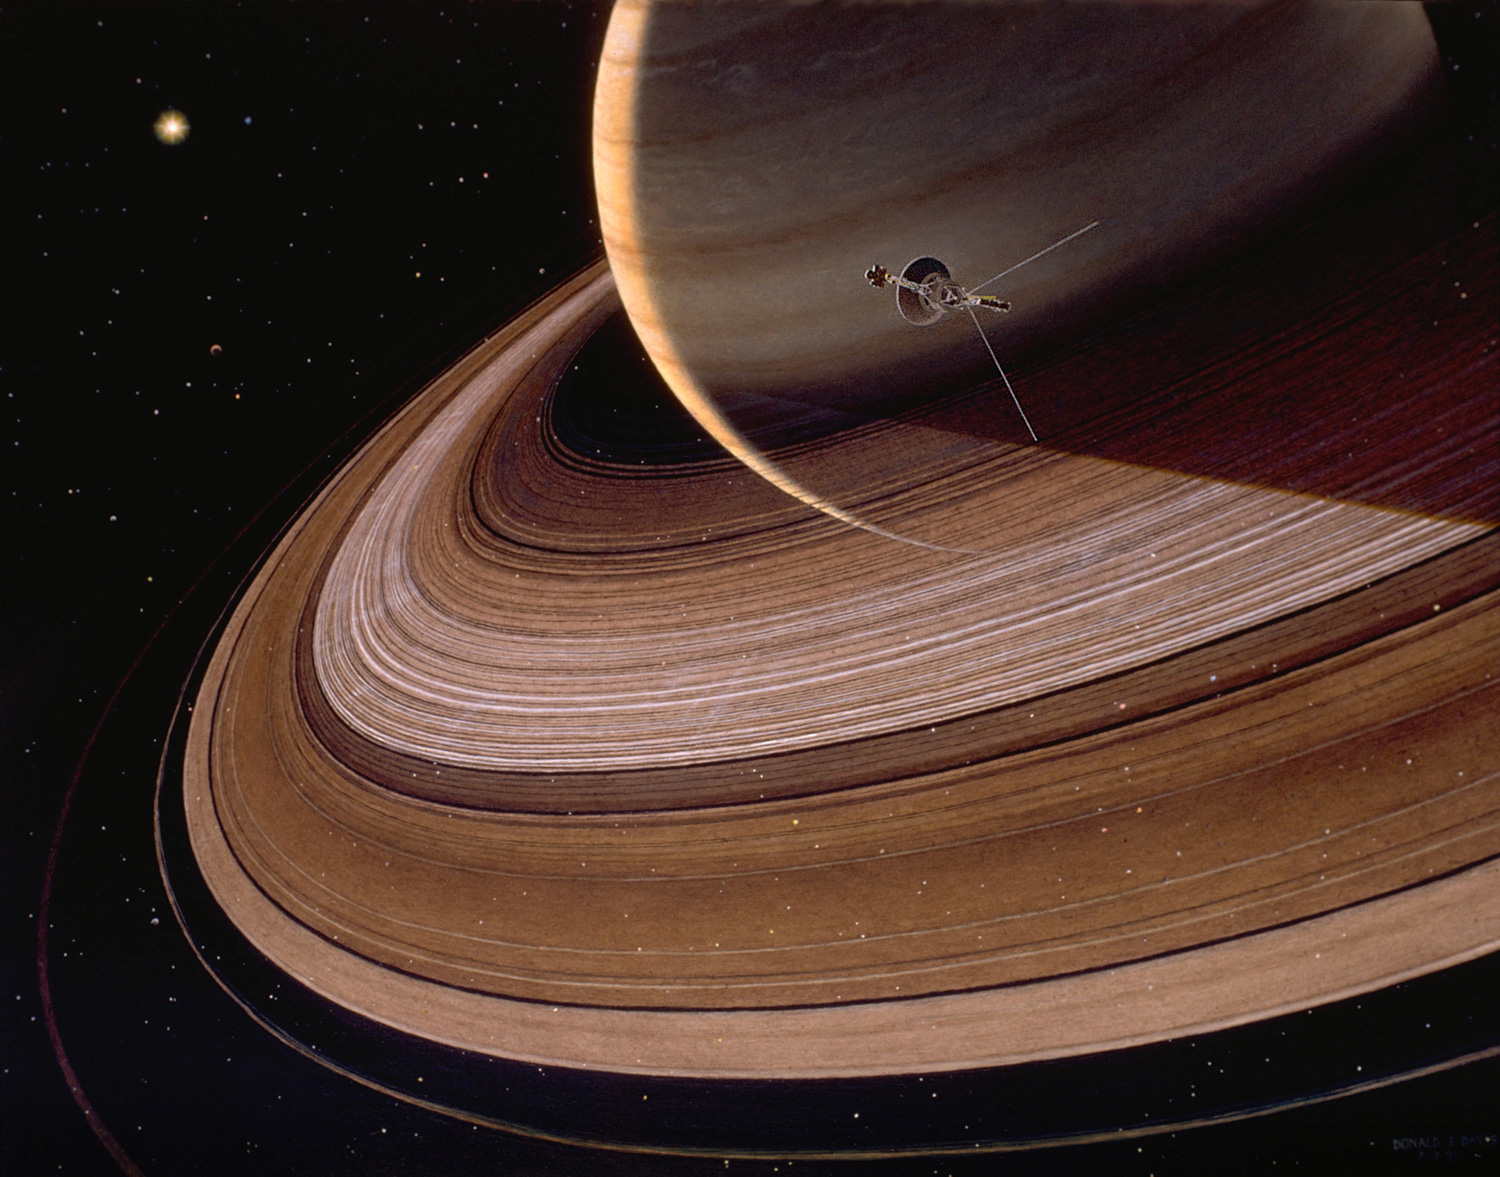 Voyager 1 and 2 saturn